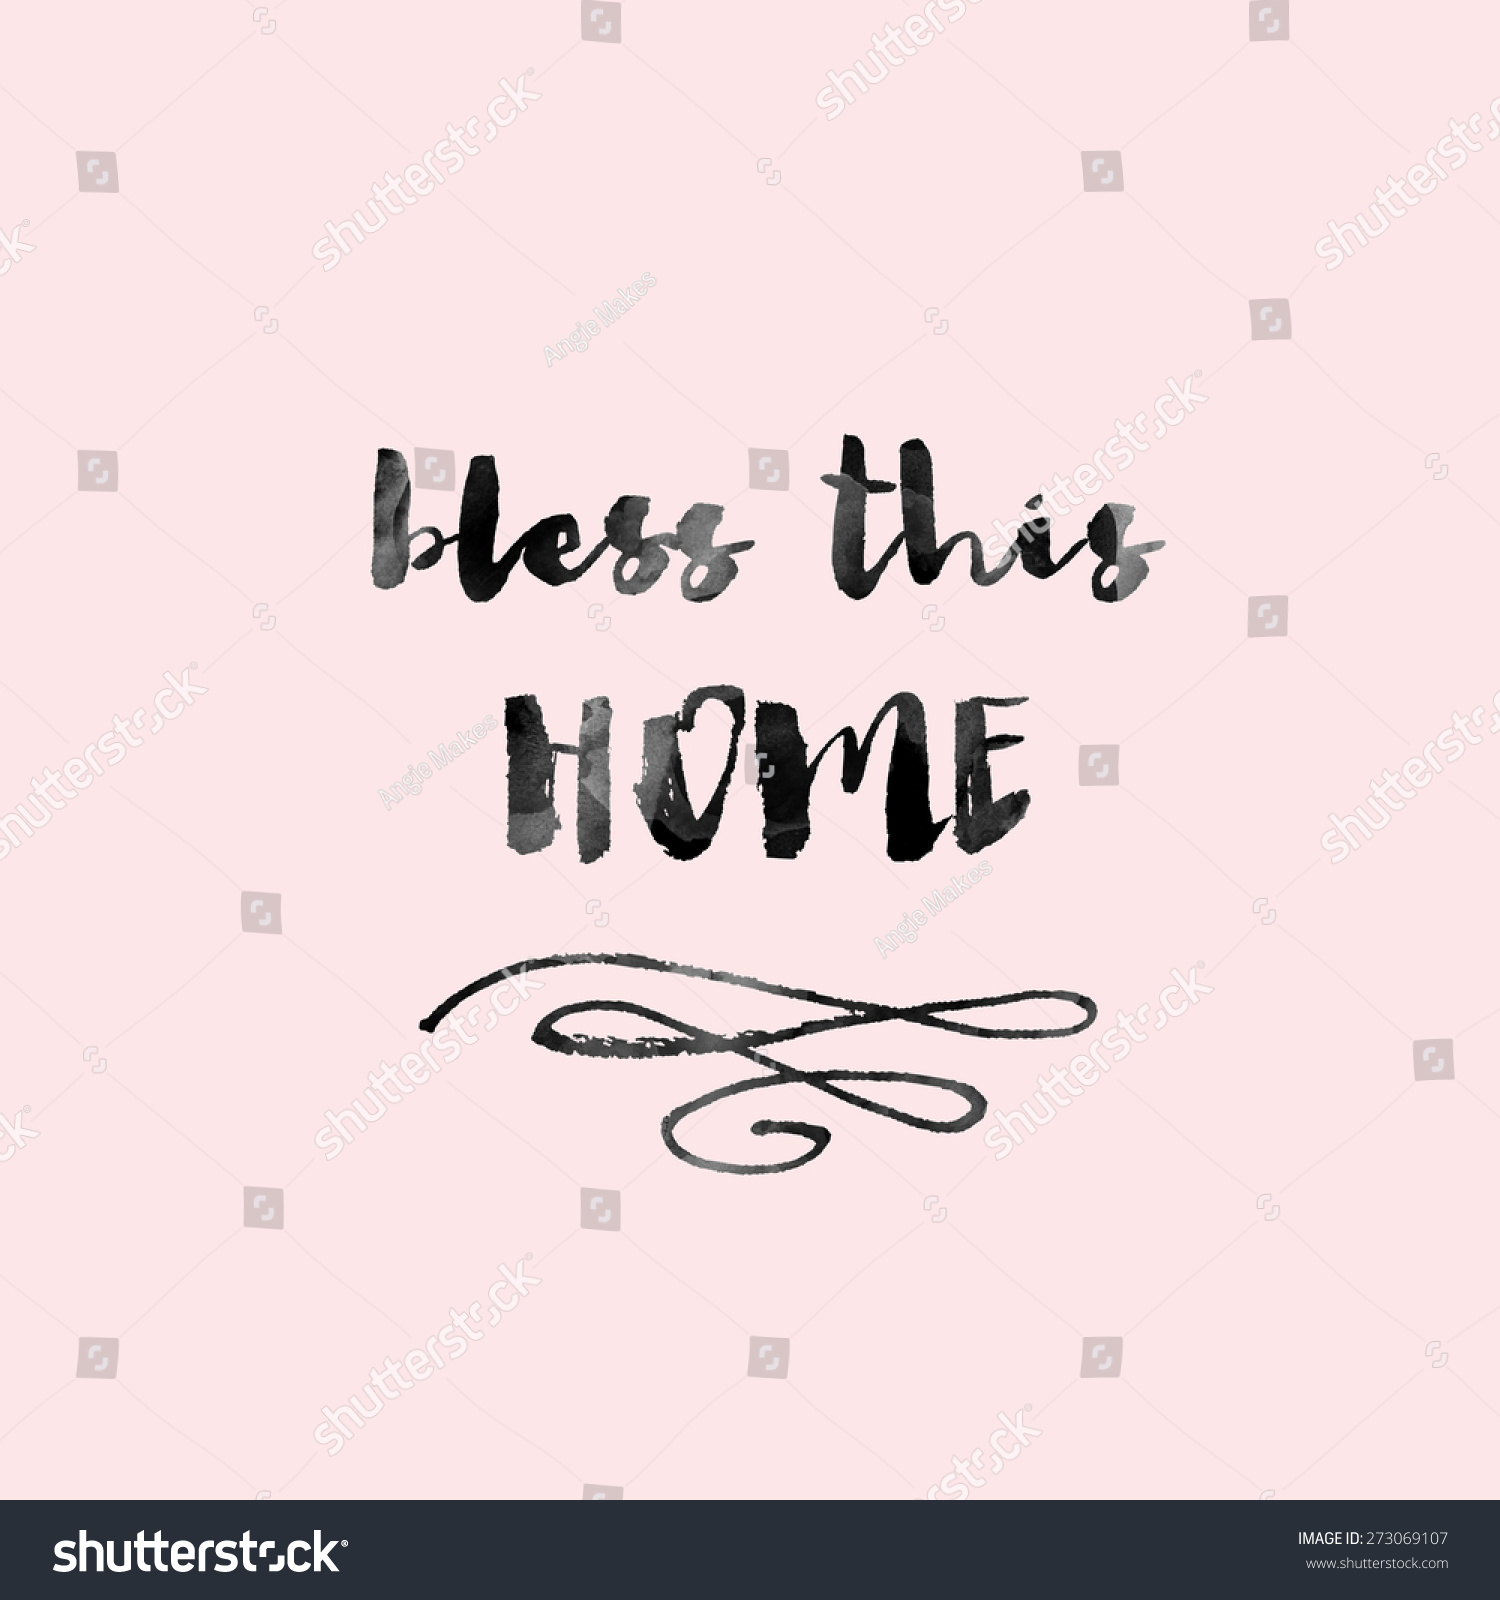 Bless This Home Modern Calligraphy Wall Stock Illustration